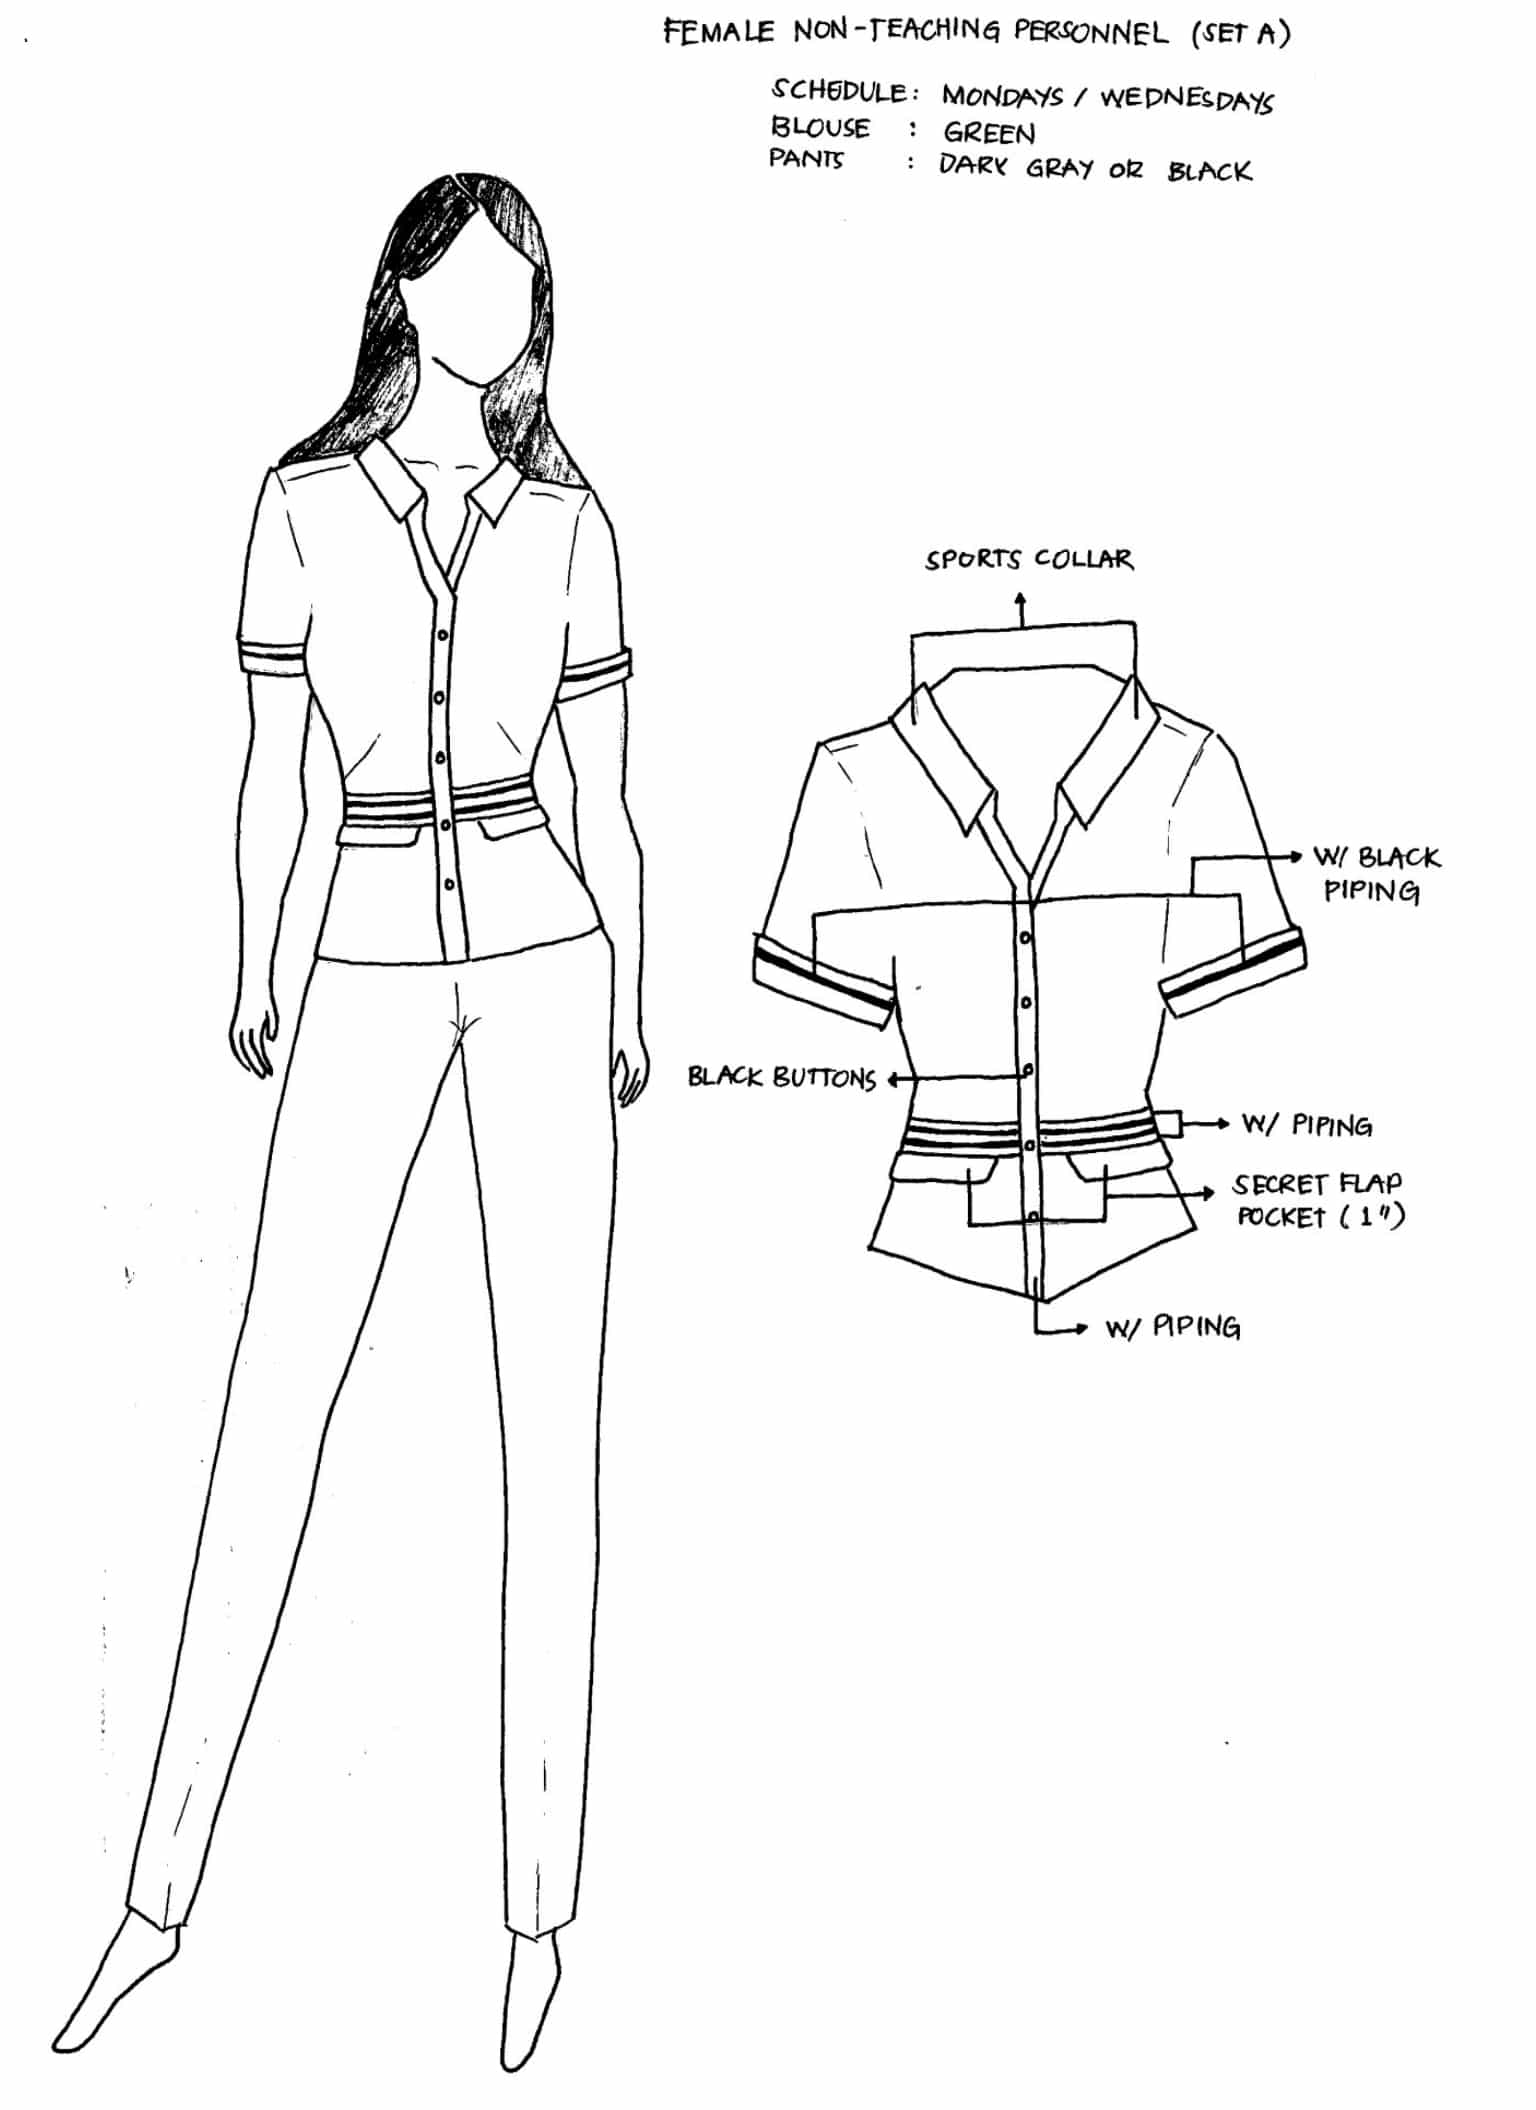 DepEd National Uniforms Female Non-Teaching Personnel (SET A)